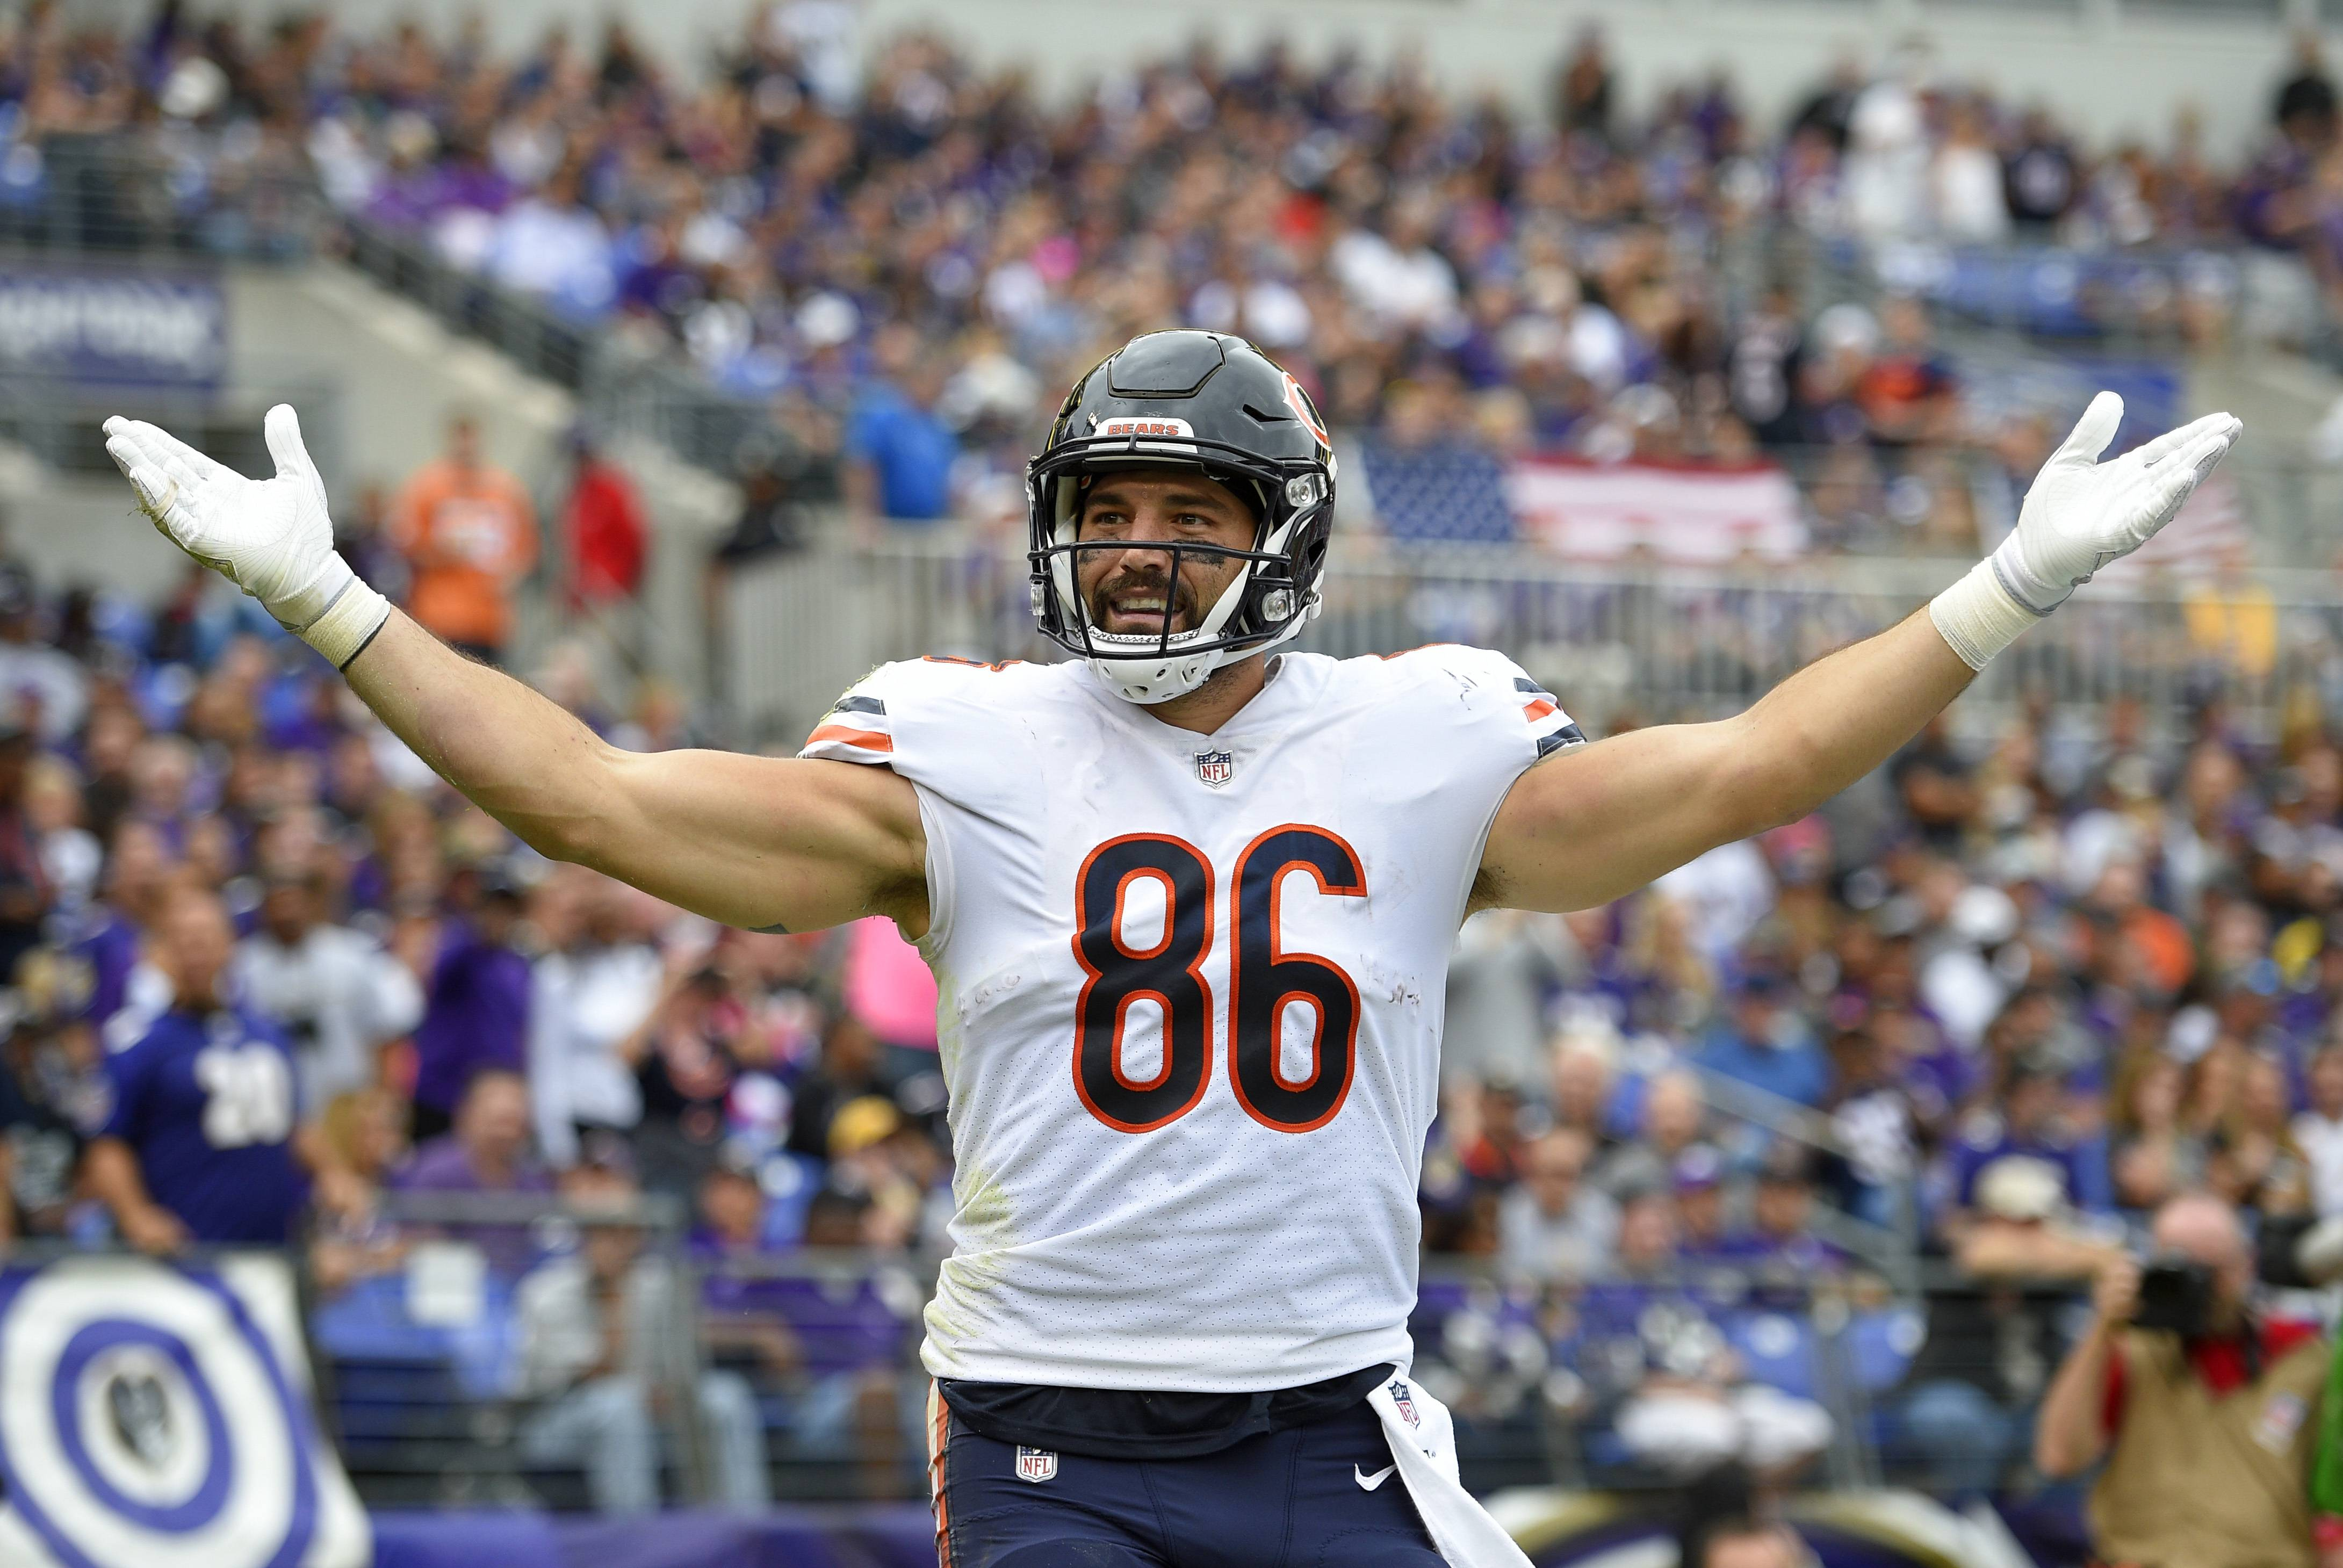 After suffering a traumatic injury last season, tight end Zach Miller has agreed to a one-year deal to remain with the Chicago Bears, team officials announced Monday.